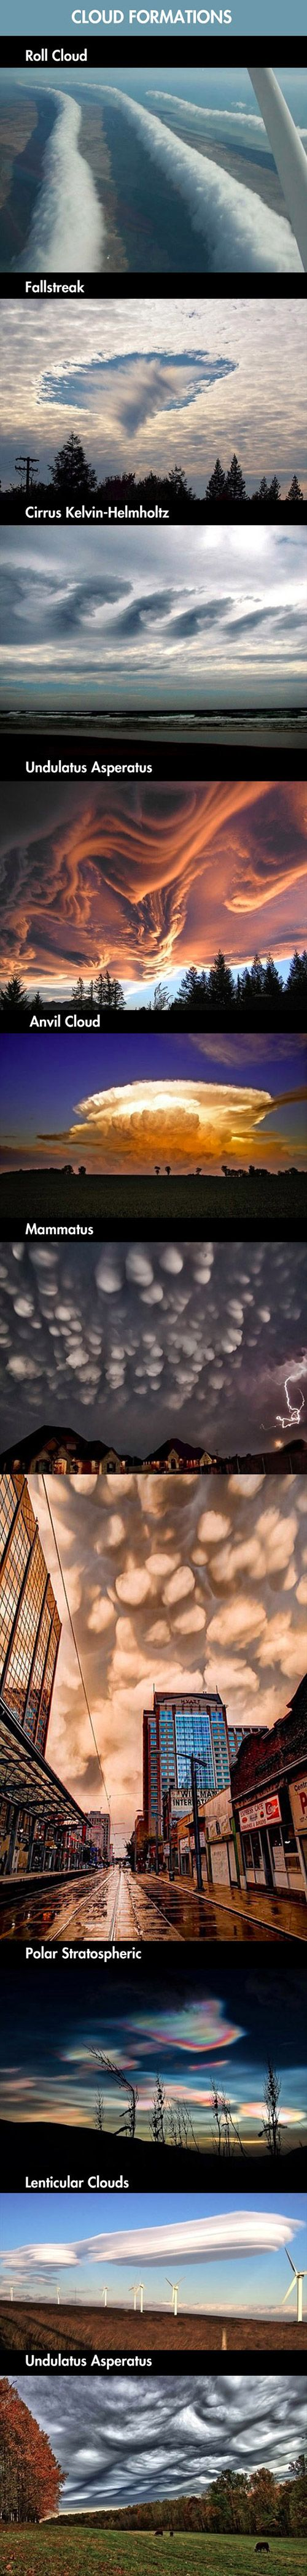 Some incredible cloud formations that exist in nature